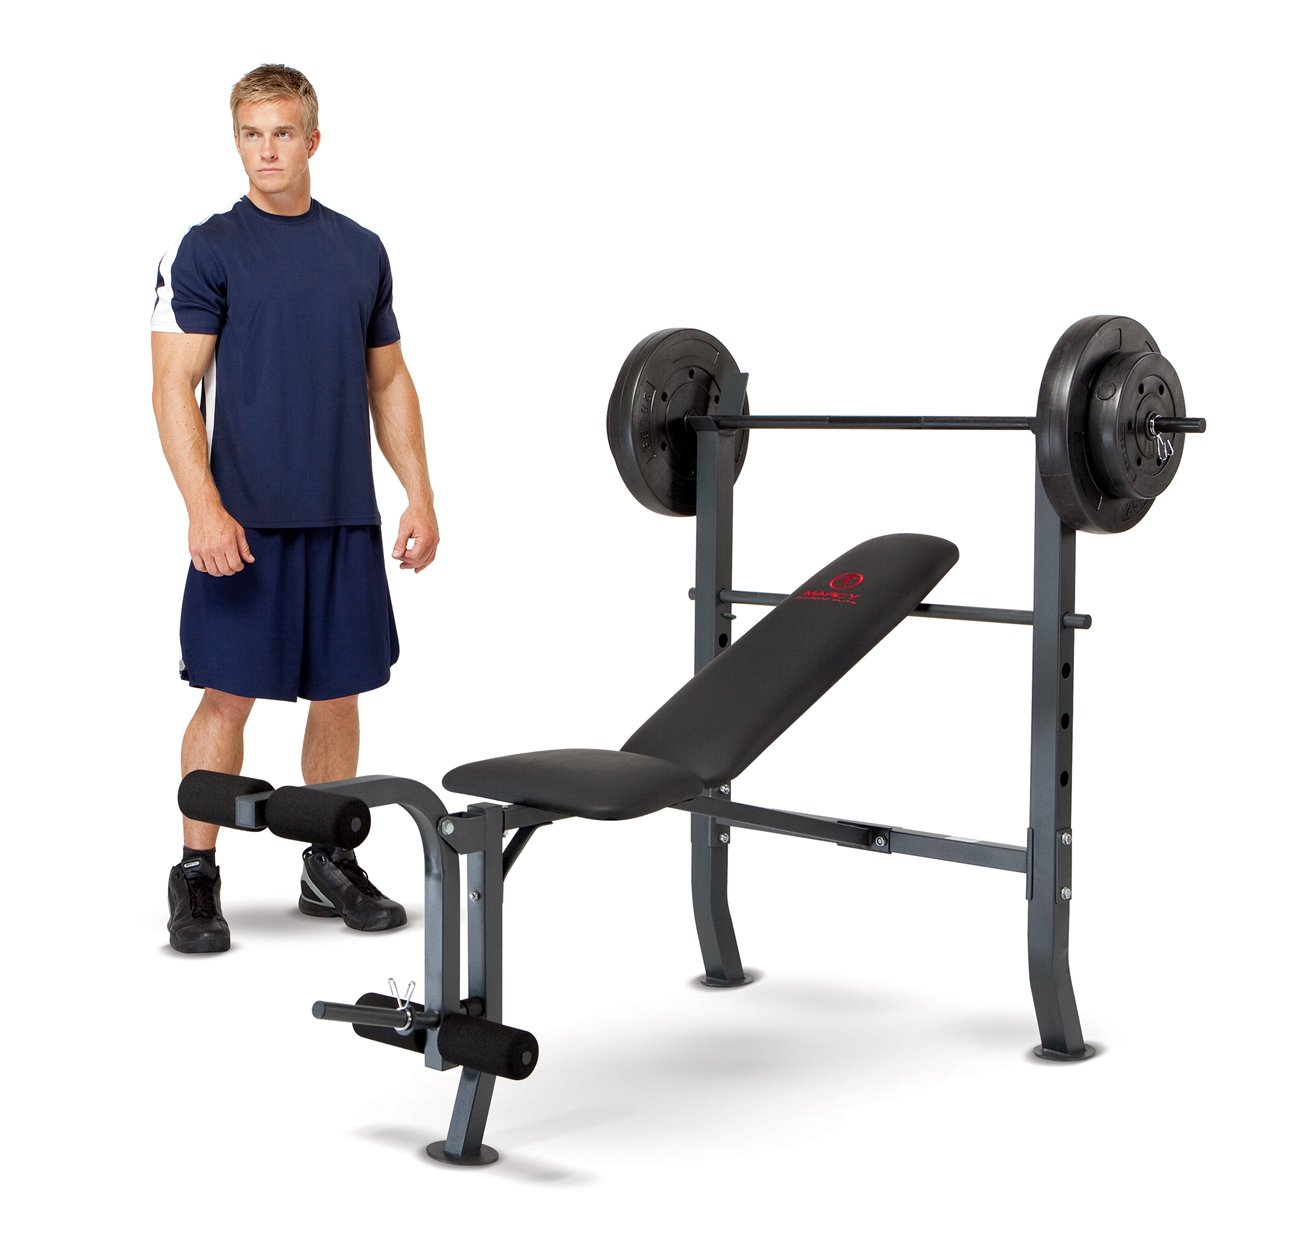 Marcy Standard Bench with 80 lb Weight Set Home Gym Workout Equipment | MD2080